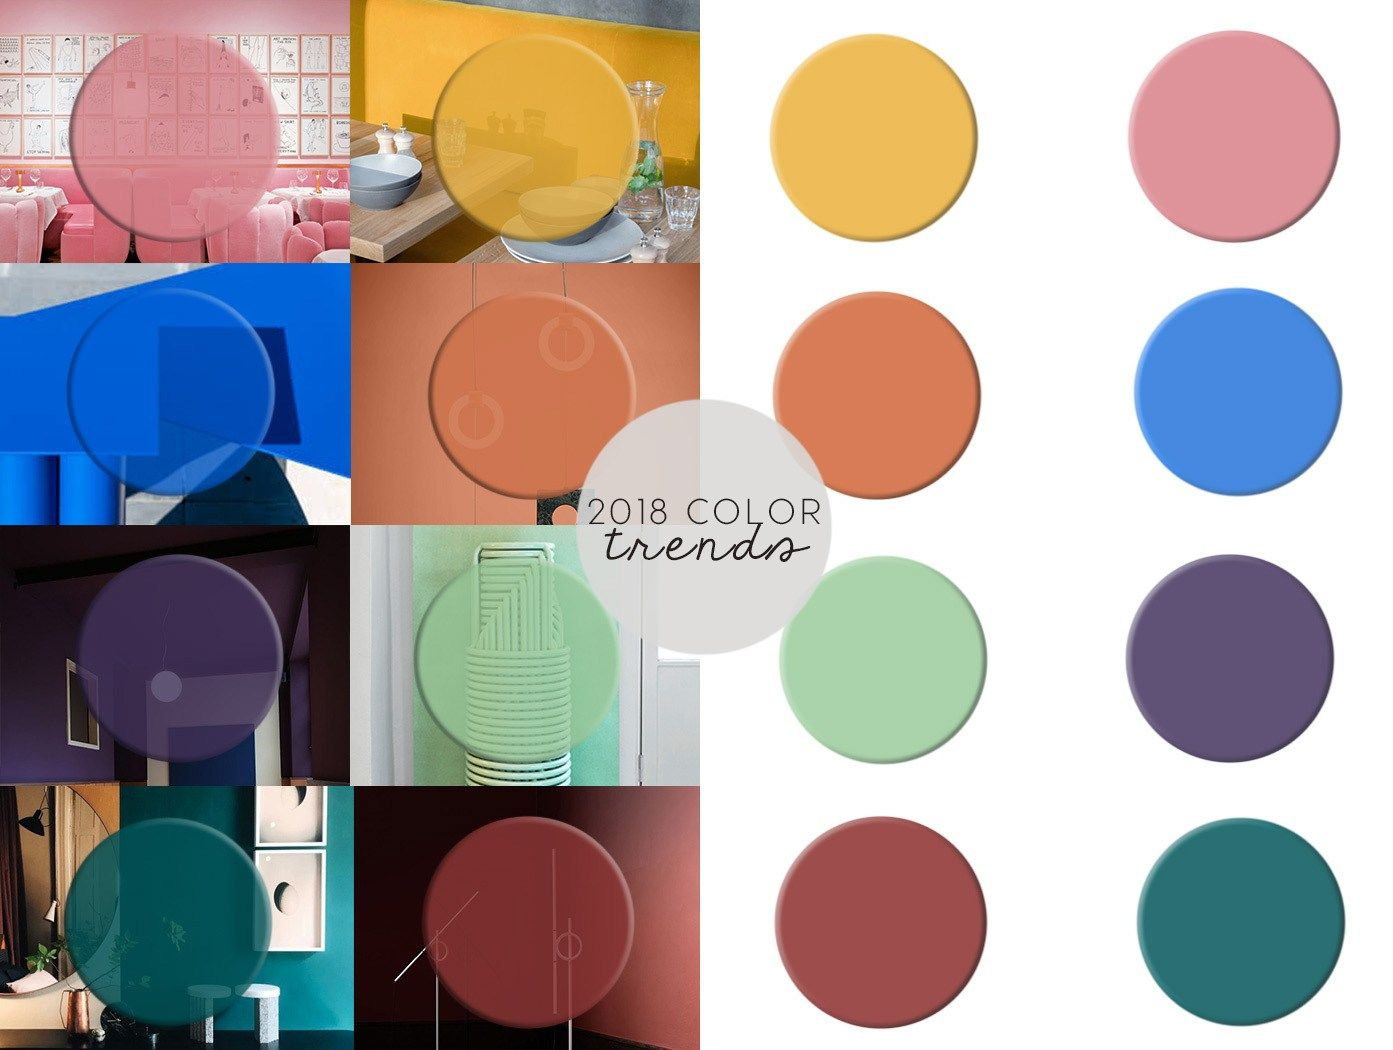 A Roundup Of The Interior Color Trends For 2018 Starting From Milan Design Week New